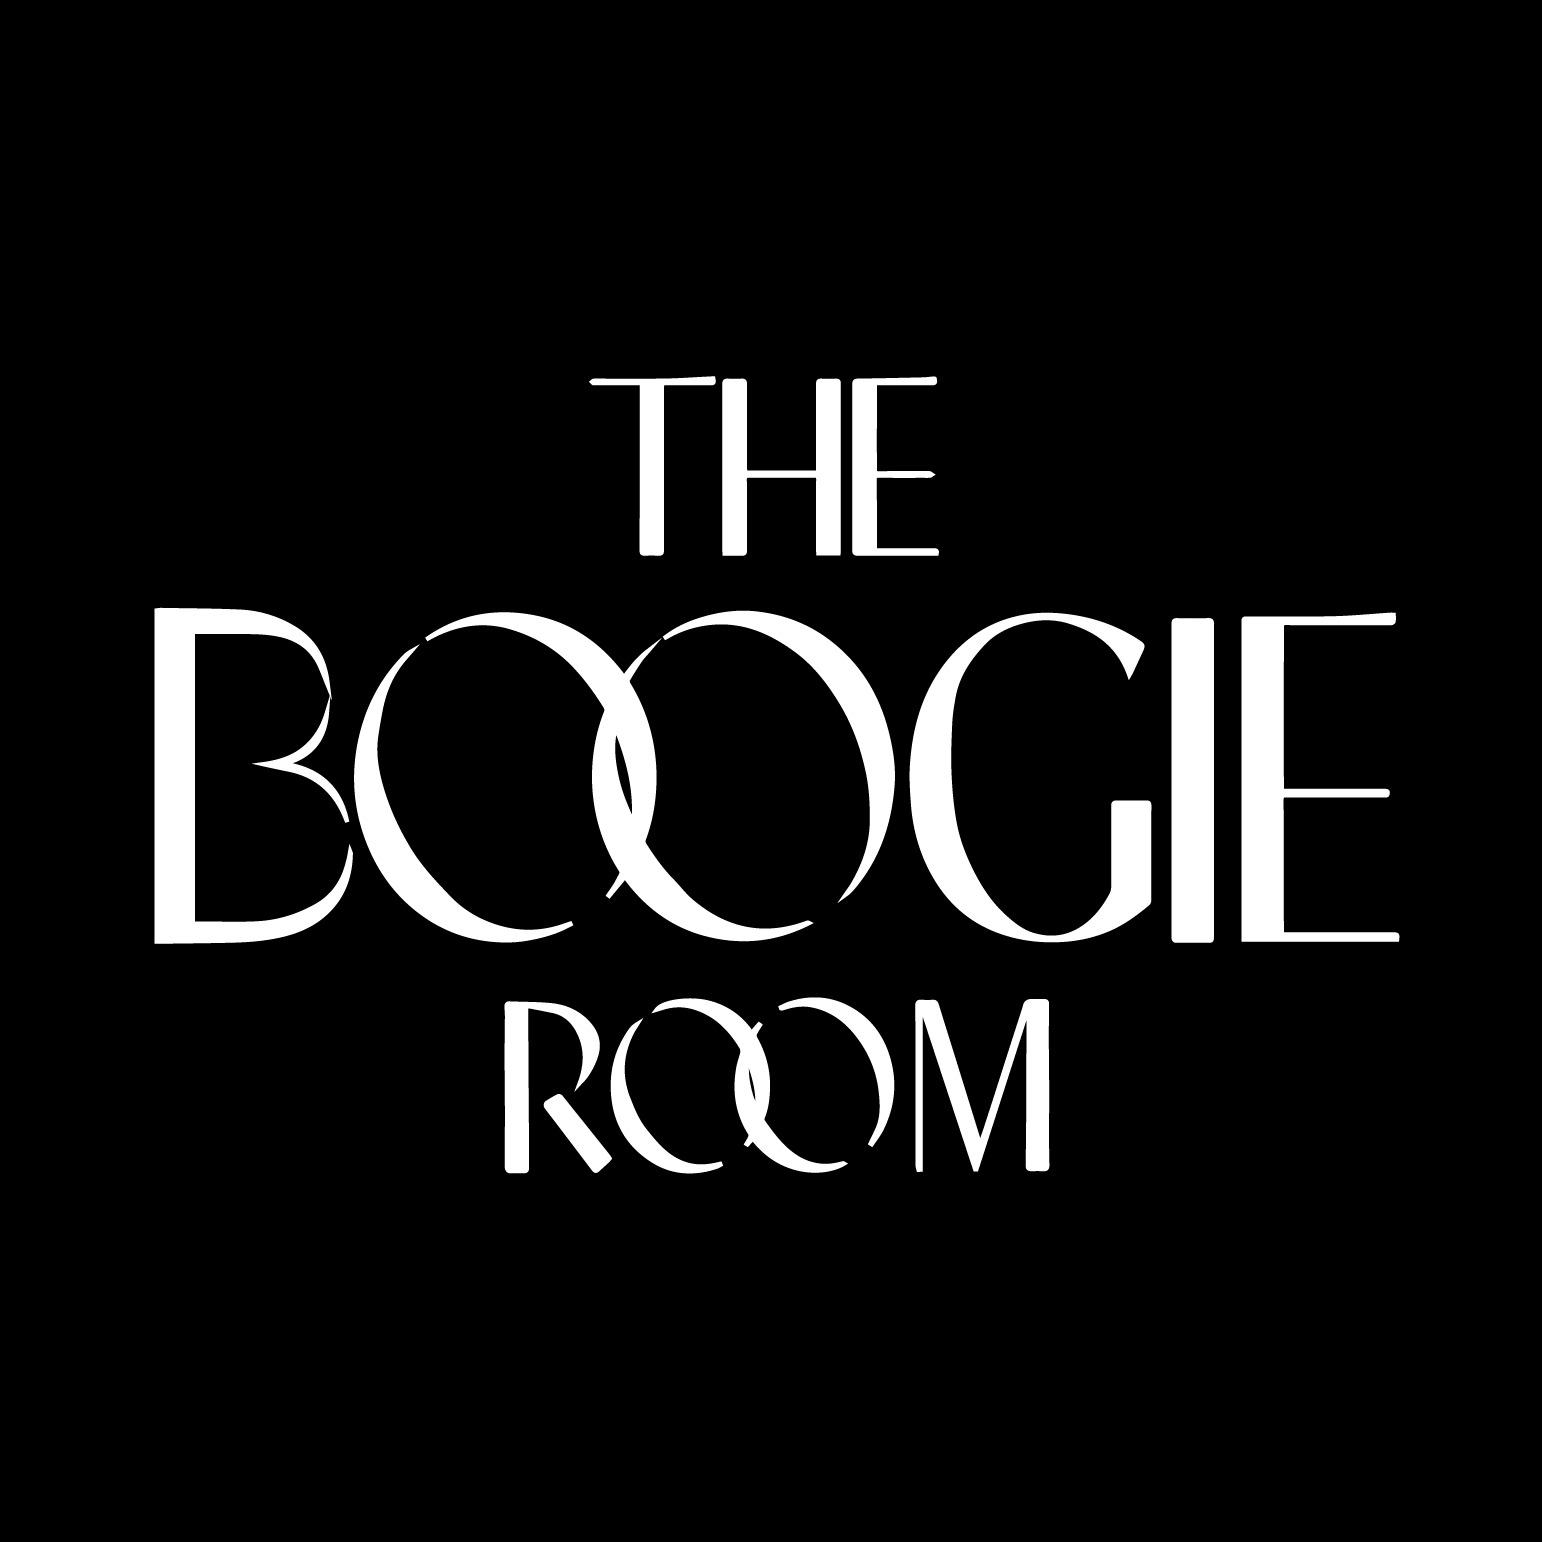 The Boogie Room